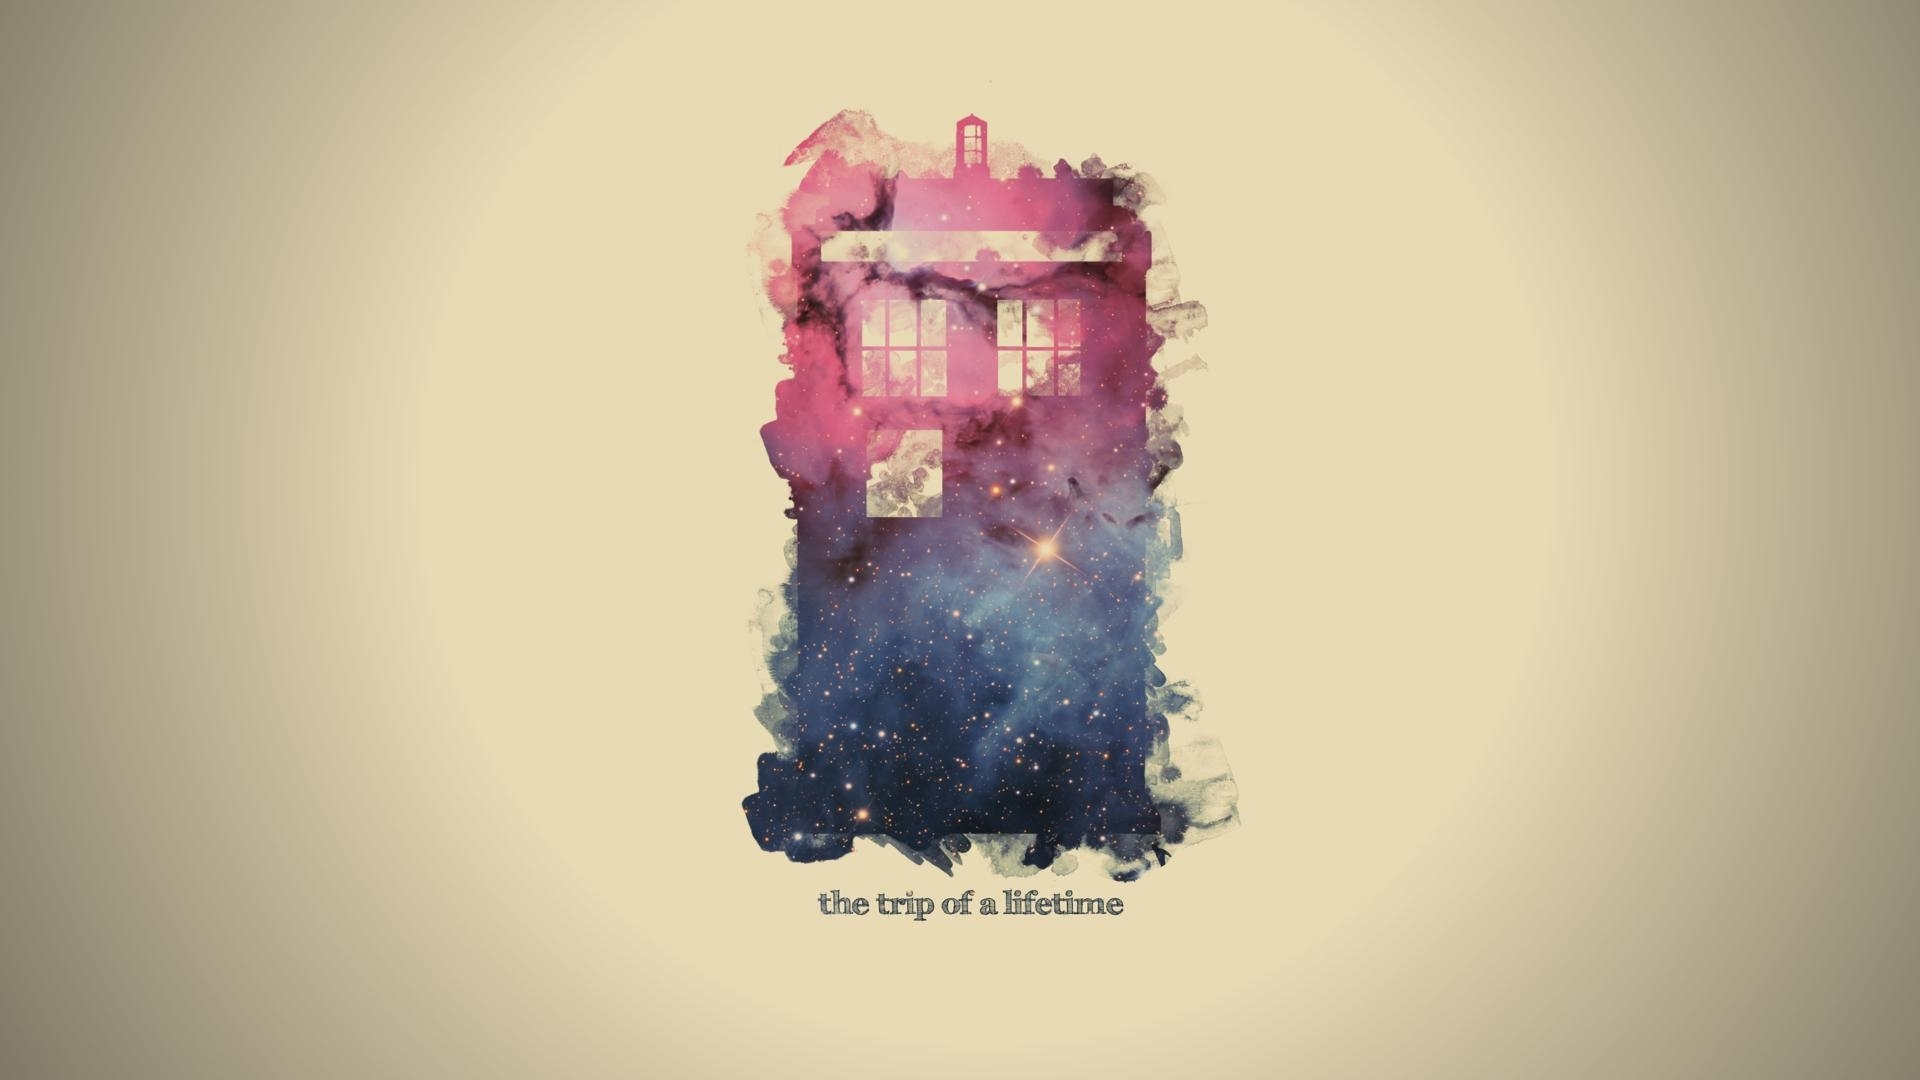 doctor who phone wallpapers - wallpaper cave